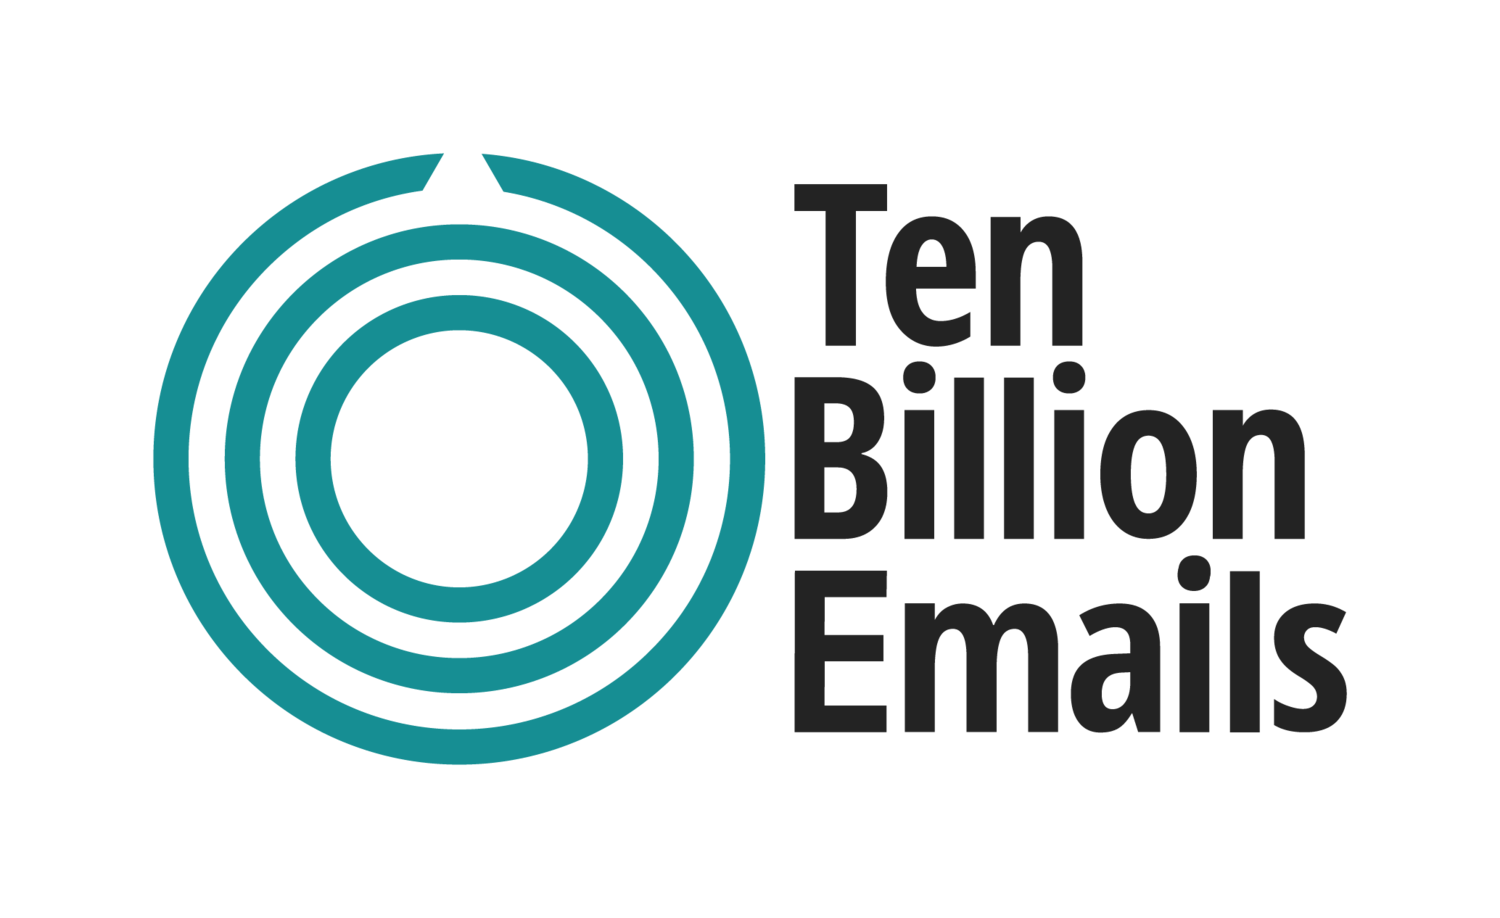 10 Billion Emails by Drew Price